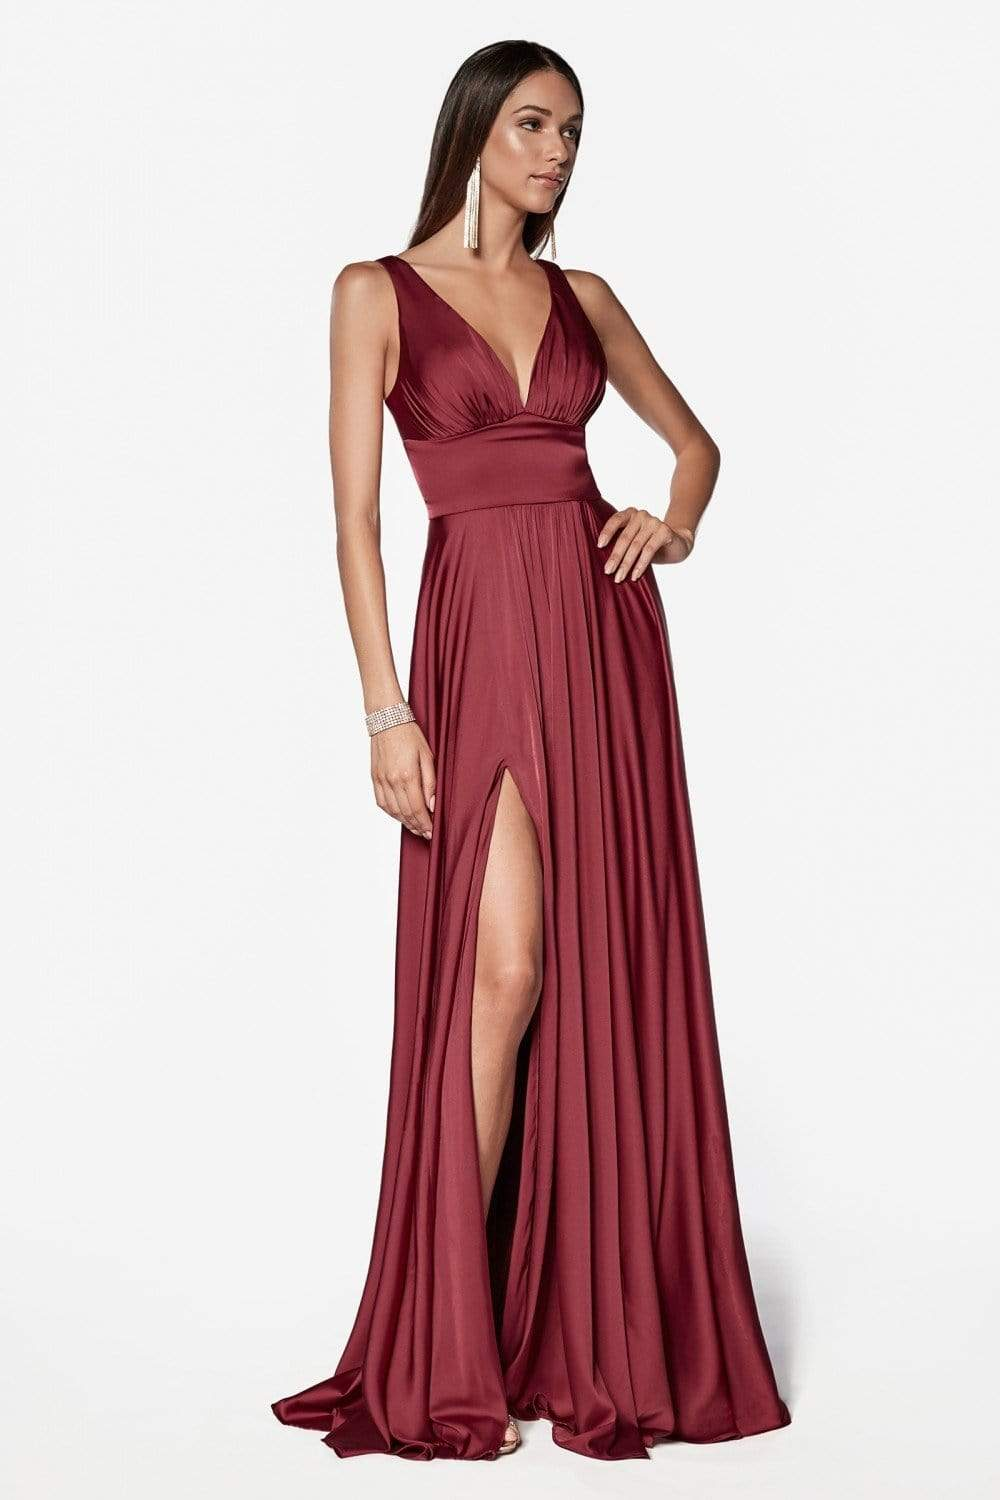 Cinderella Divine - 7469 Sleeveless V Neck Flowing Satin Gown in Red